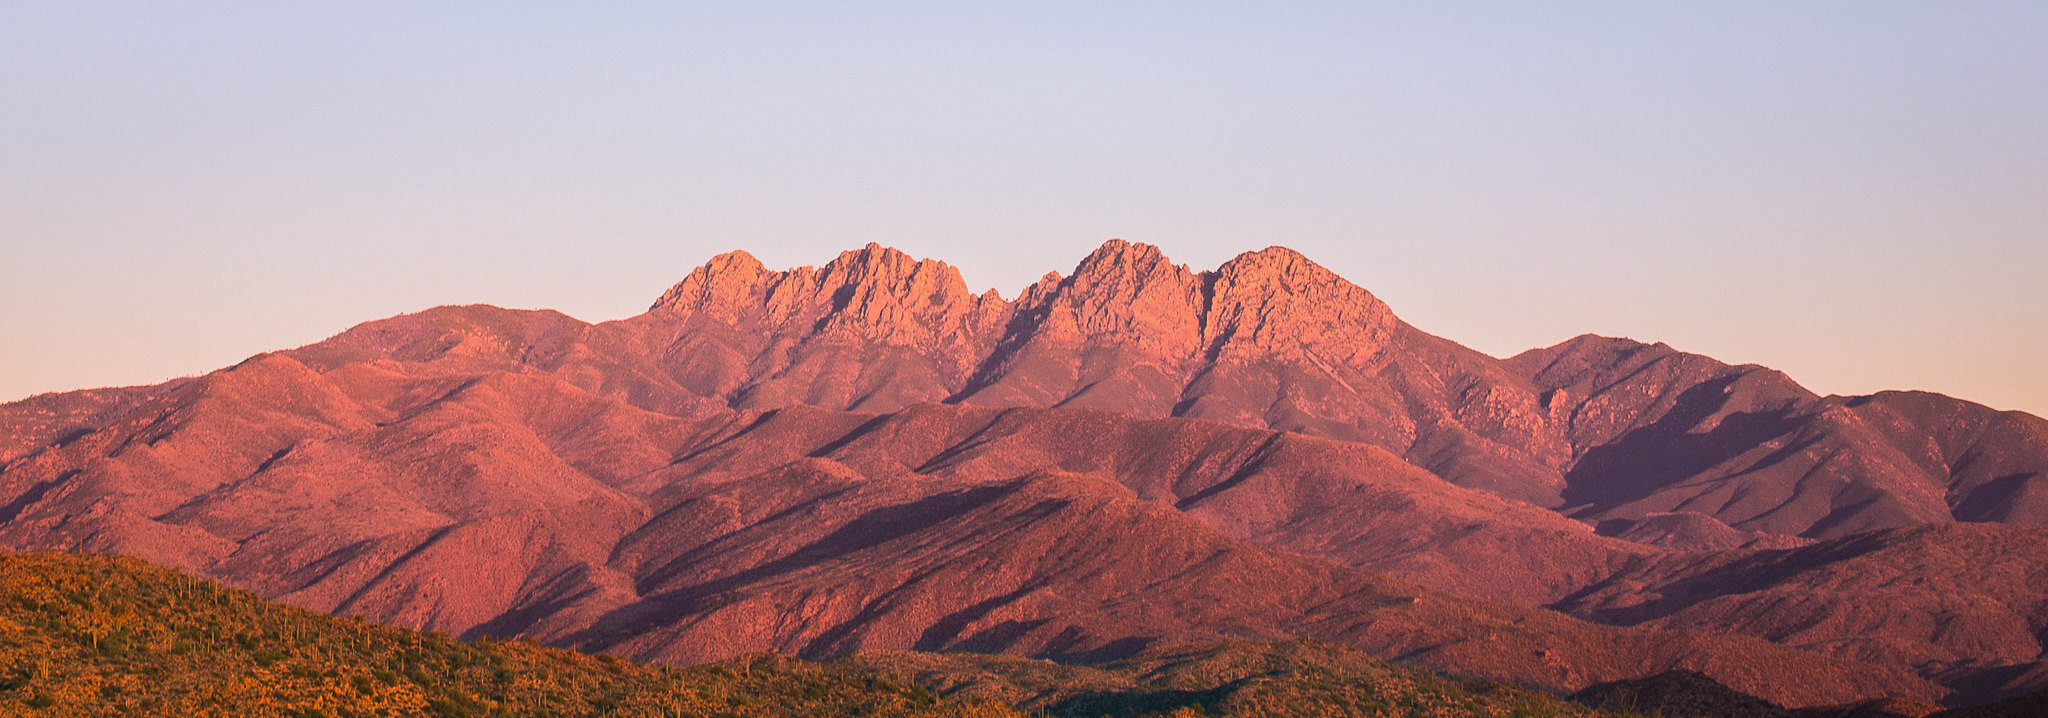 Landscape shot of Four Peaks in the Tonto National Forest.